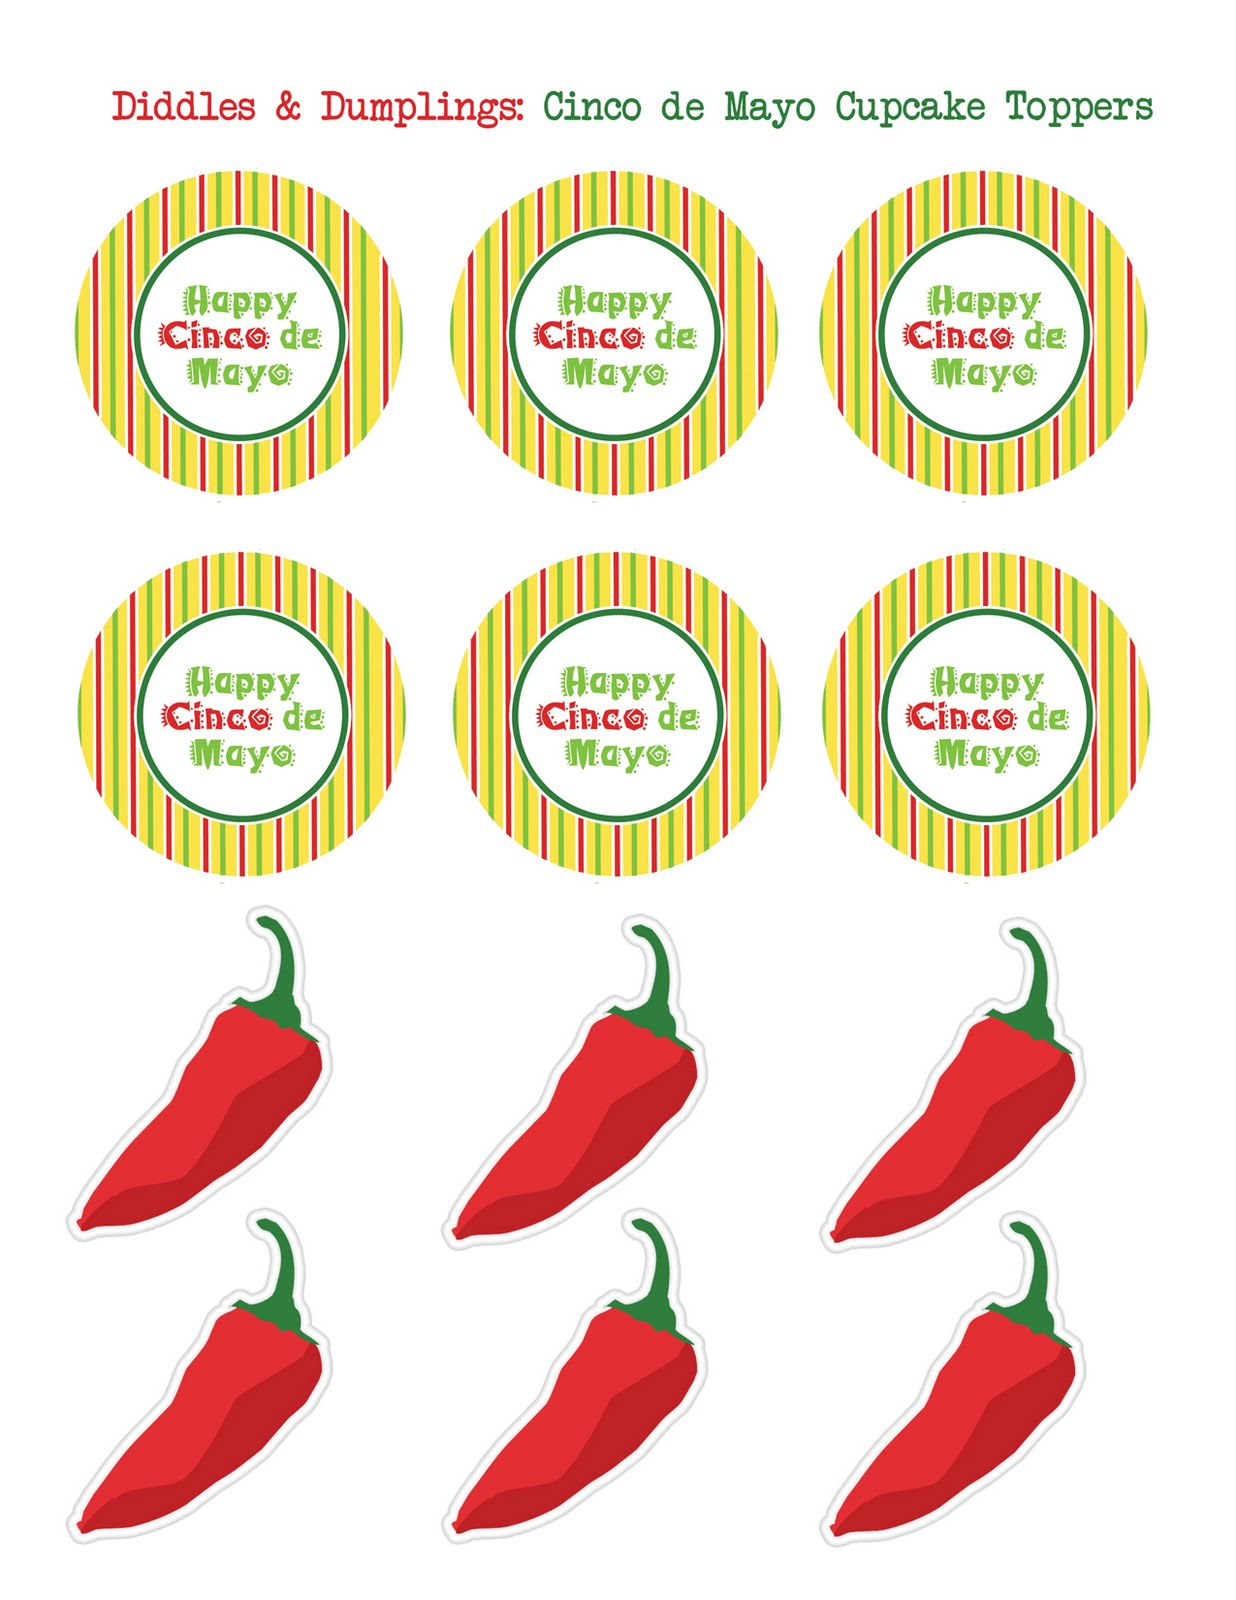 Diddles and Dumplings: Cinco de Mayo Printable Cupcake Toppers.